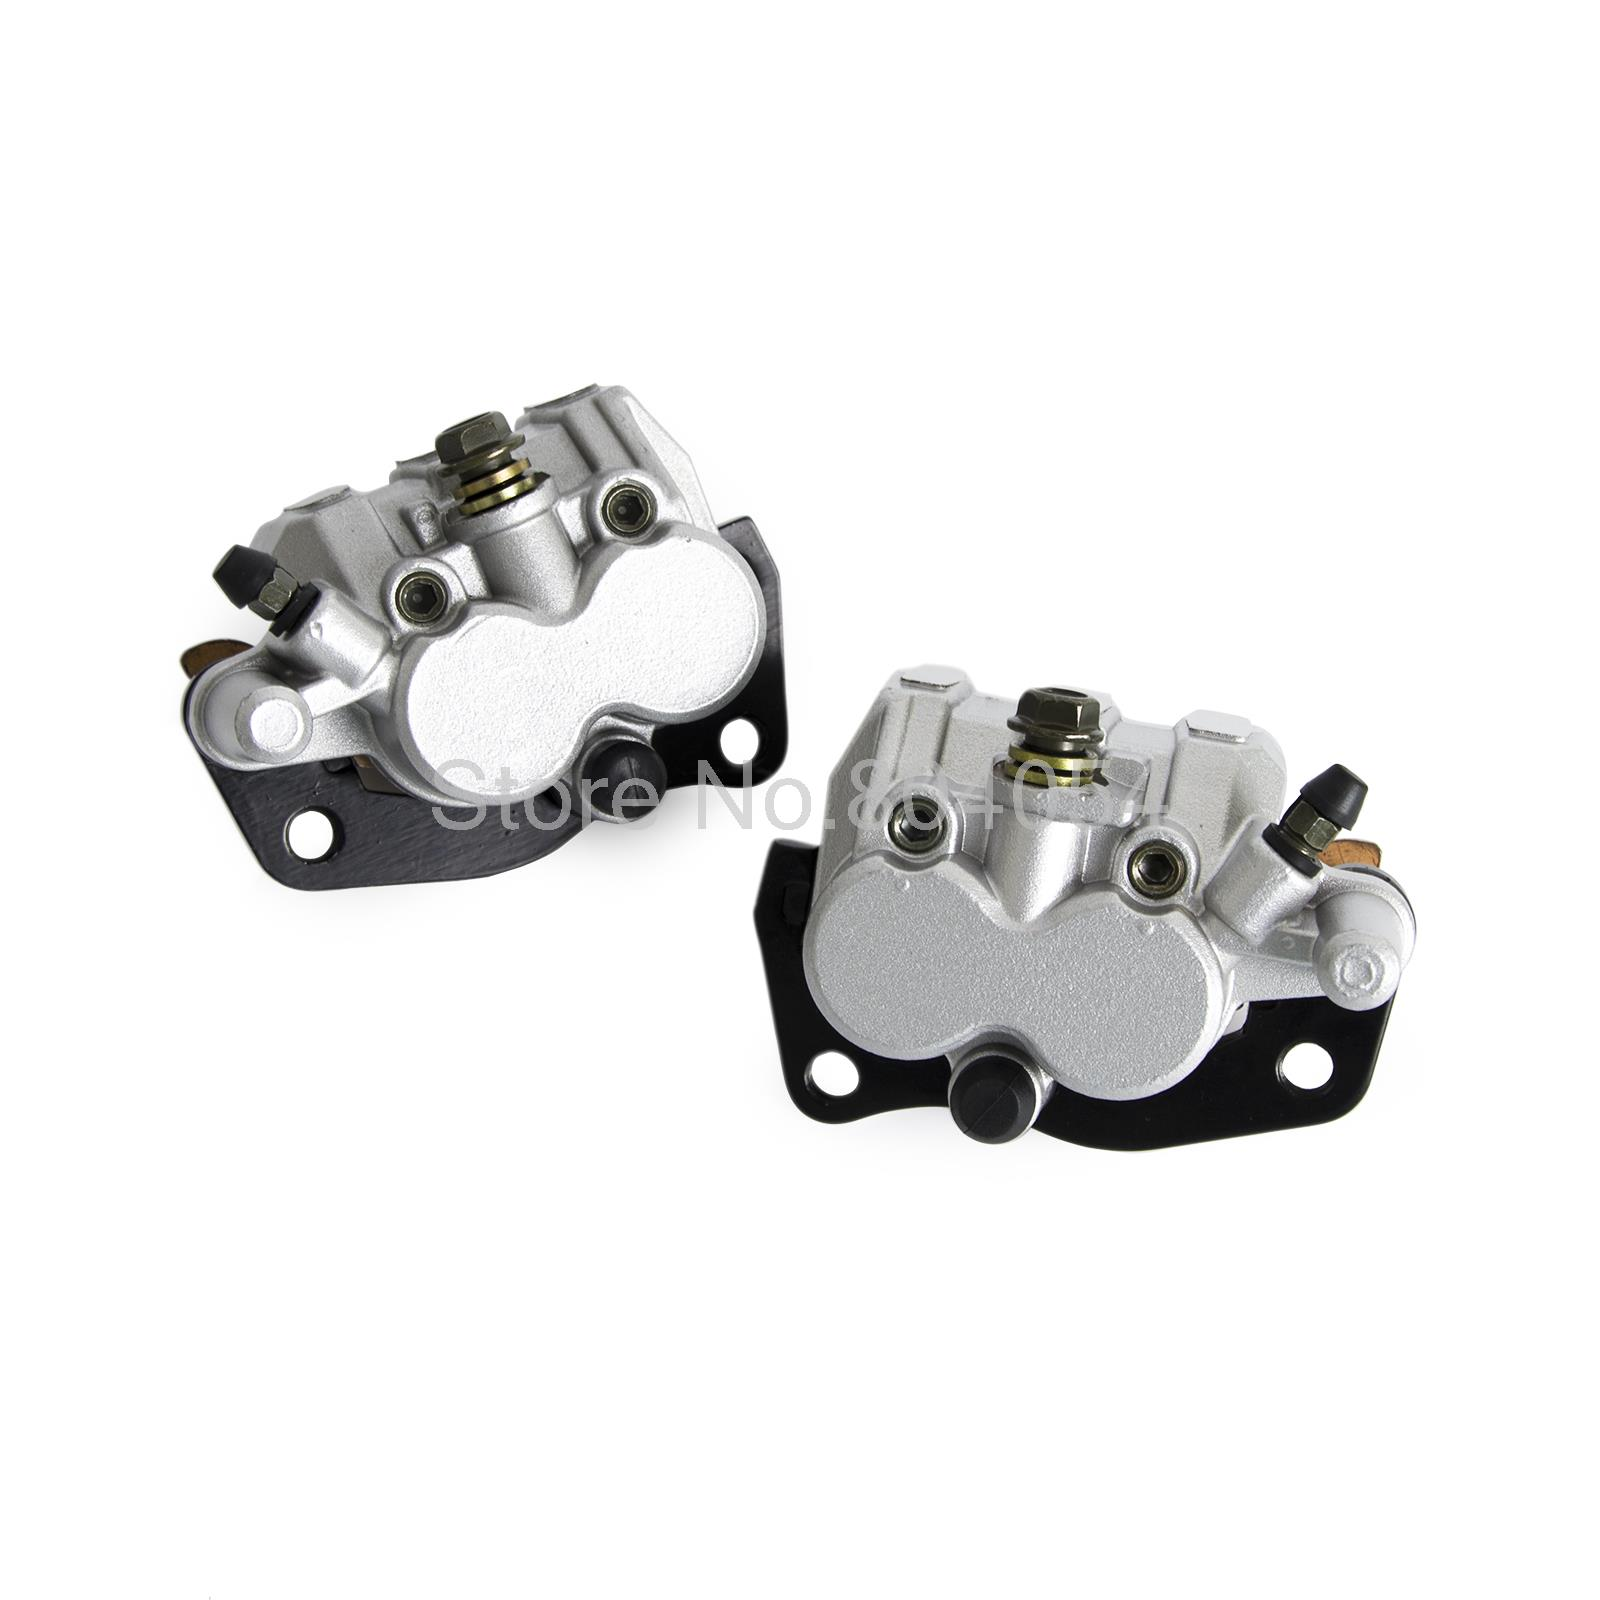 Front Right & Left Brake Caliper With Pads For Suzuki Burgman AN400 2007 2008 2009 2010 2011 front left